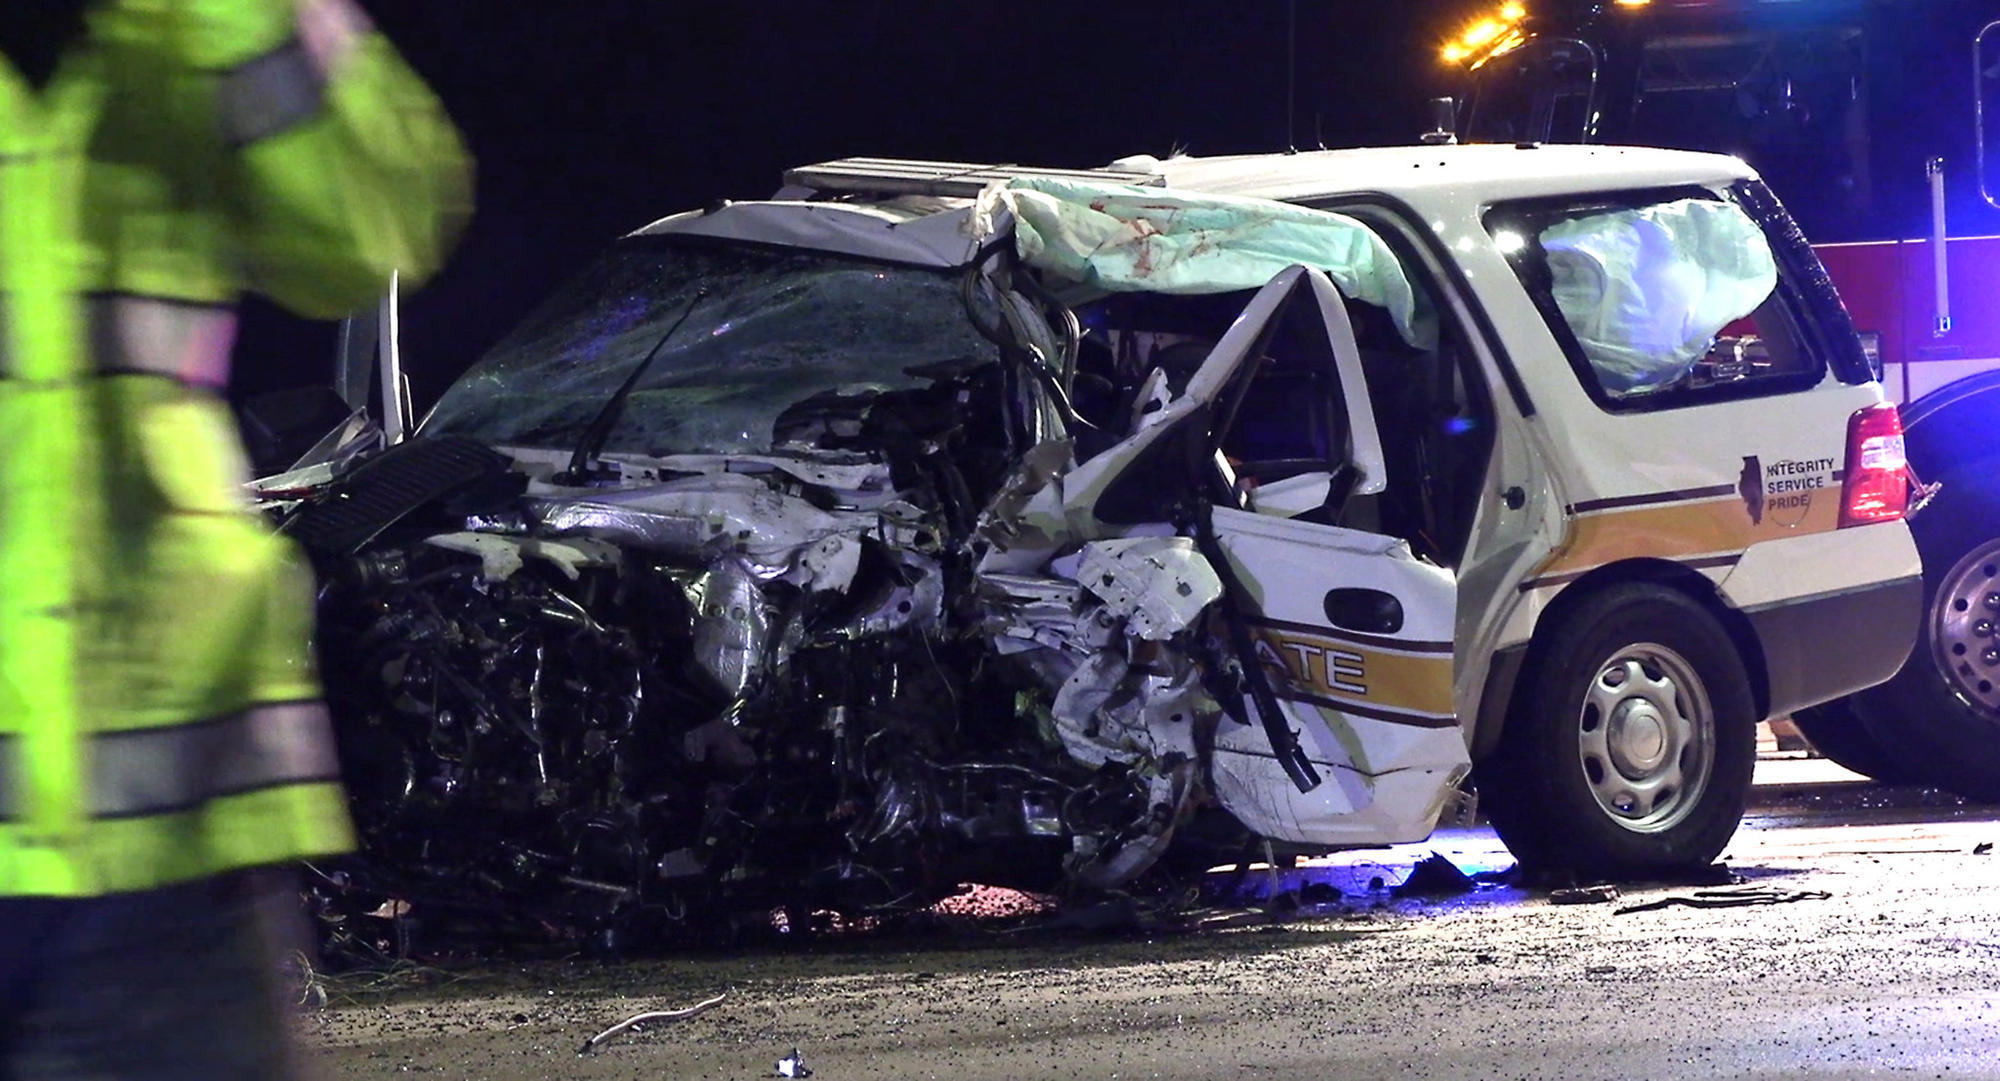 The soldier died in an accident on I-94, near Libertyville, the 2nd